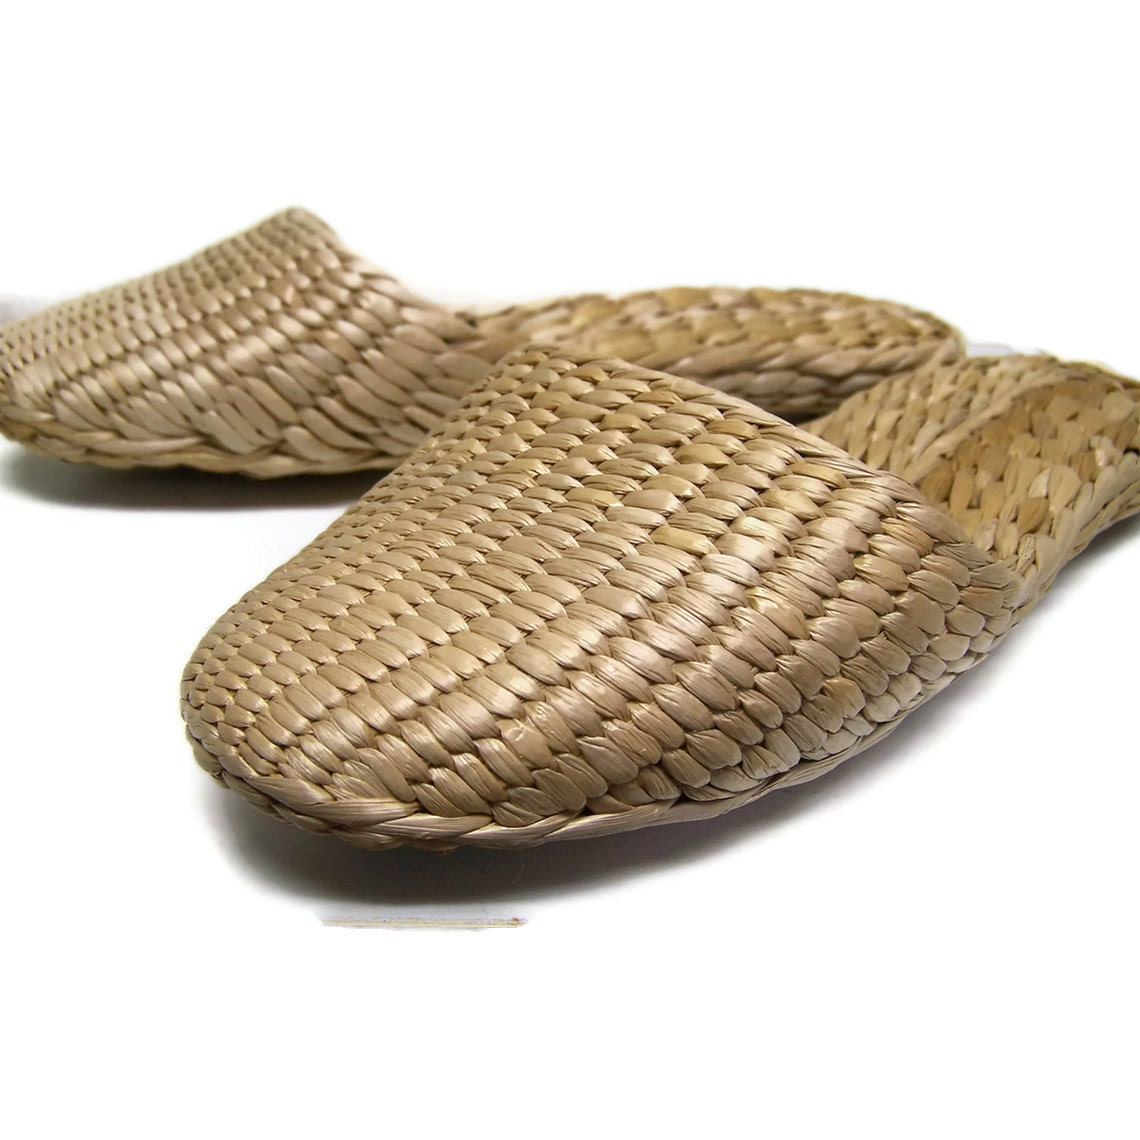 Eco Friendly Slippers: Vintage Grass Slippers Unisex Asian Slippers Eco Friendly